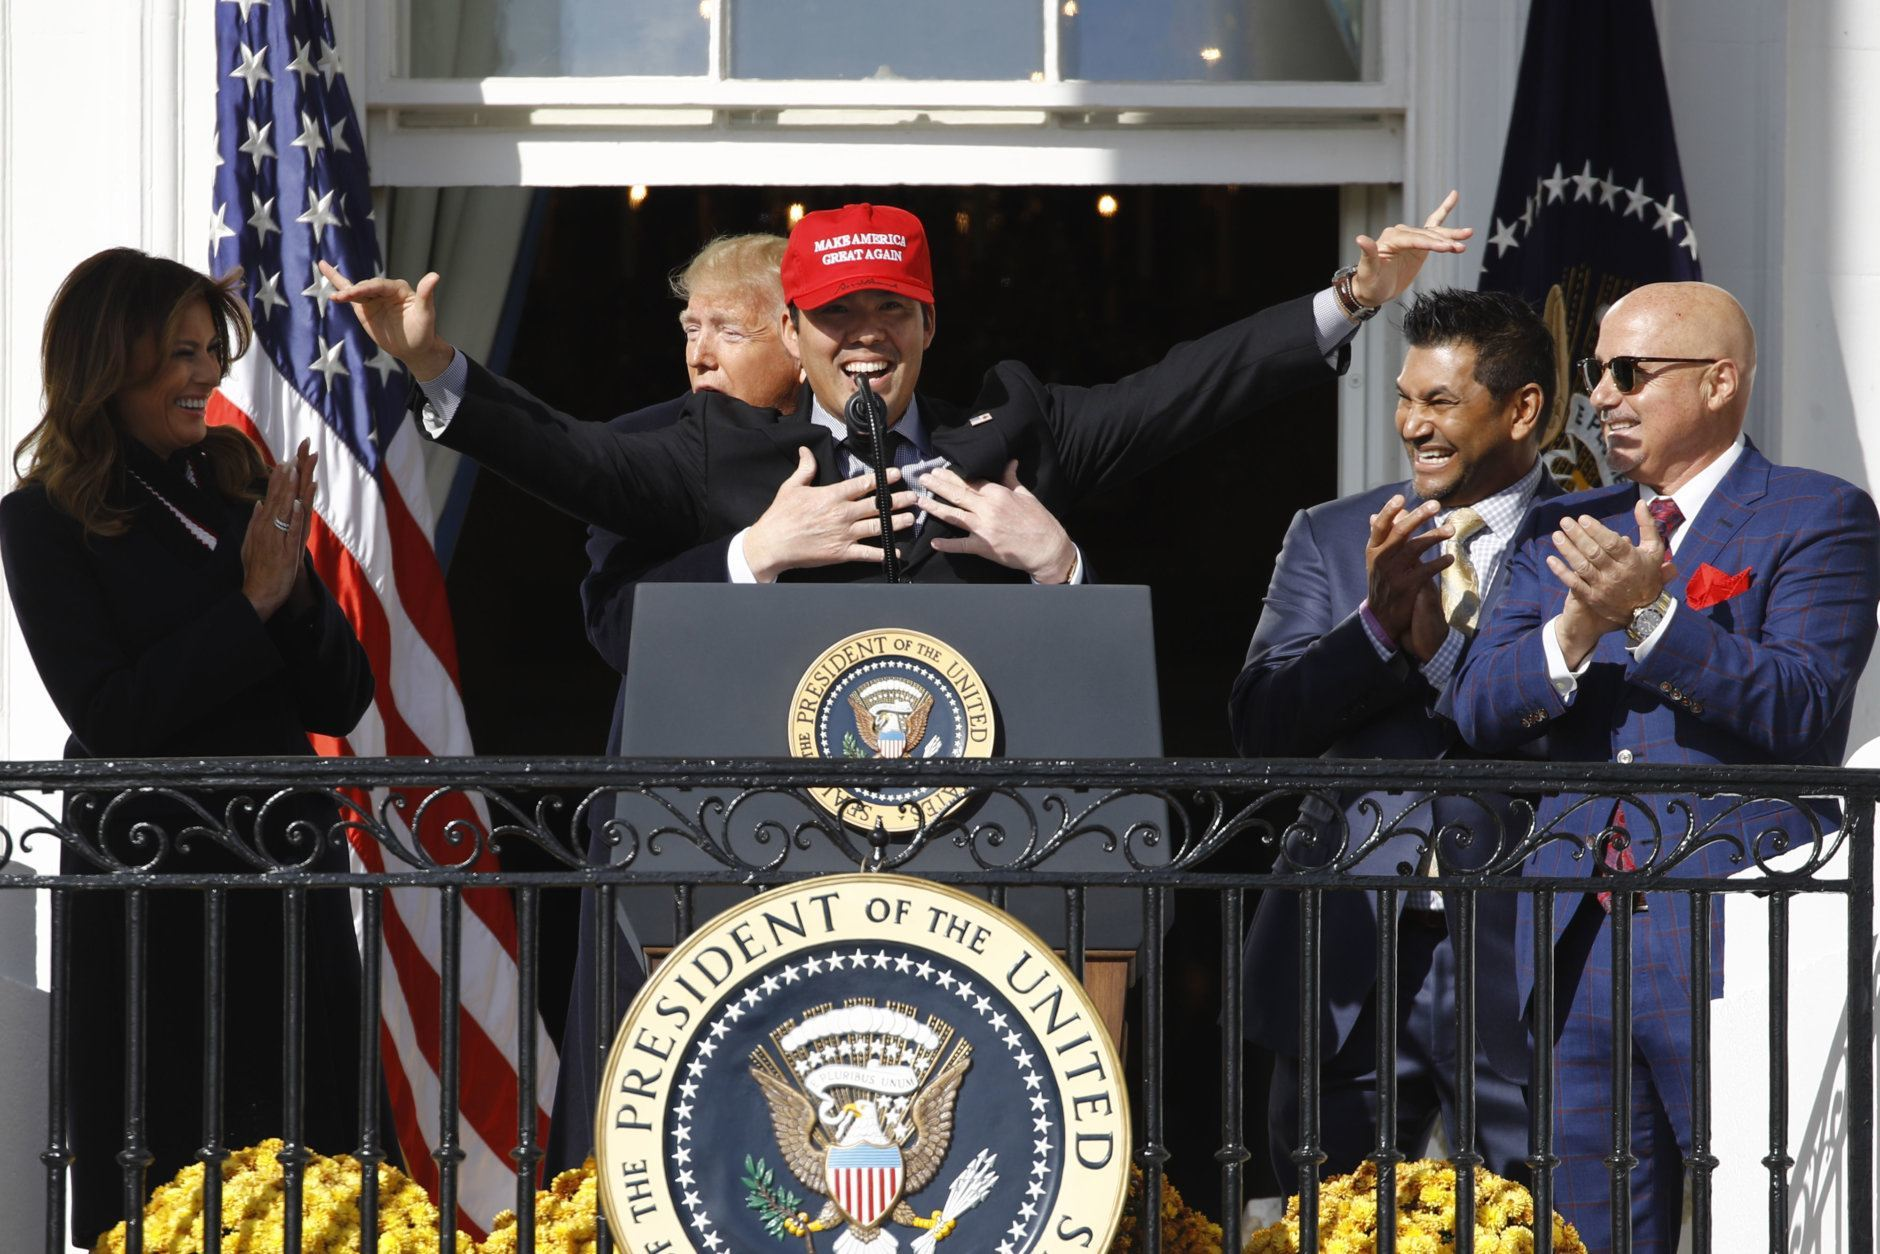 President Donald Trump hugs Washington Nationals catcher Kurt Suzuki, during an event to honor the 2019 World Series champion Washington Nationals on the balcony of the White House, Monday, Nov. 4, 2019, in Washington, as First Lady Melania Trump, left, and Washington Nationals coach Dave Martinez, second from right and general manager Mike Rizzo, far right, look on. Suzuki is wearing a Make America Great Again hat. (AP Photo/Patrick Semansky)